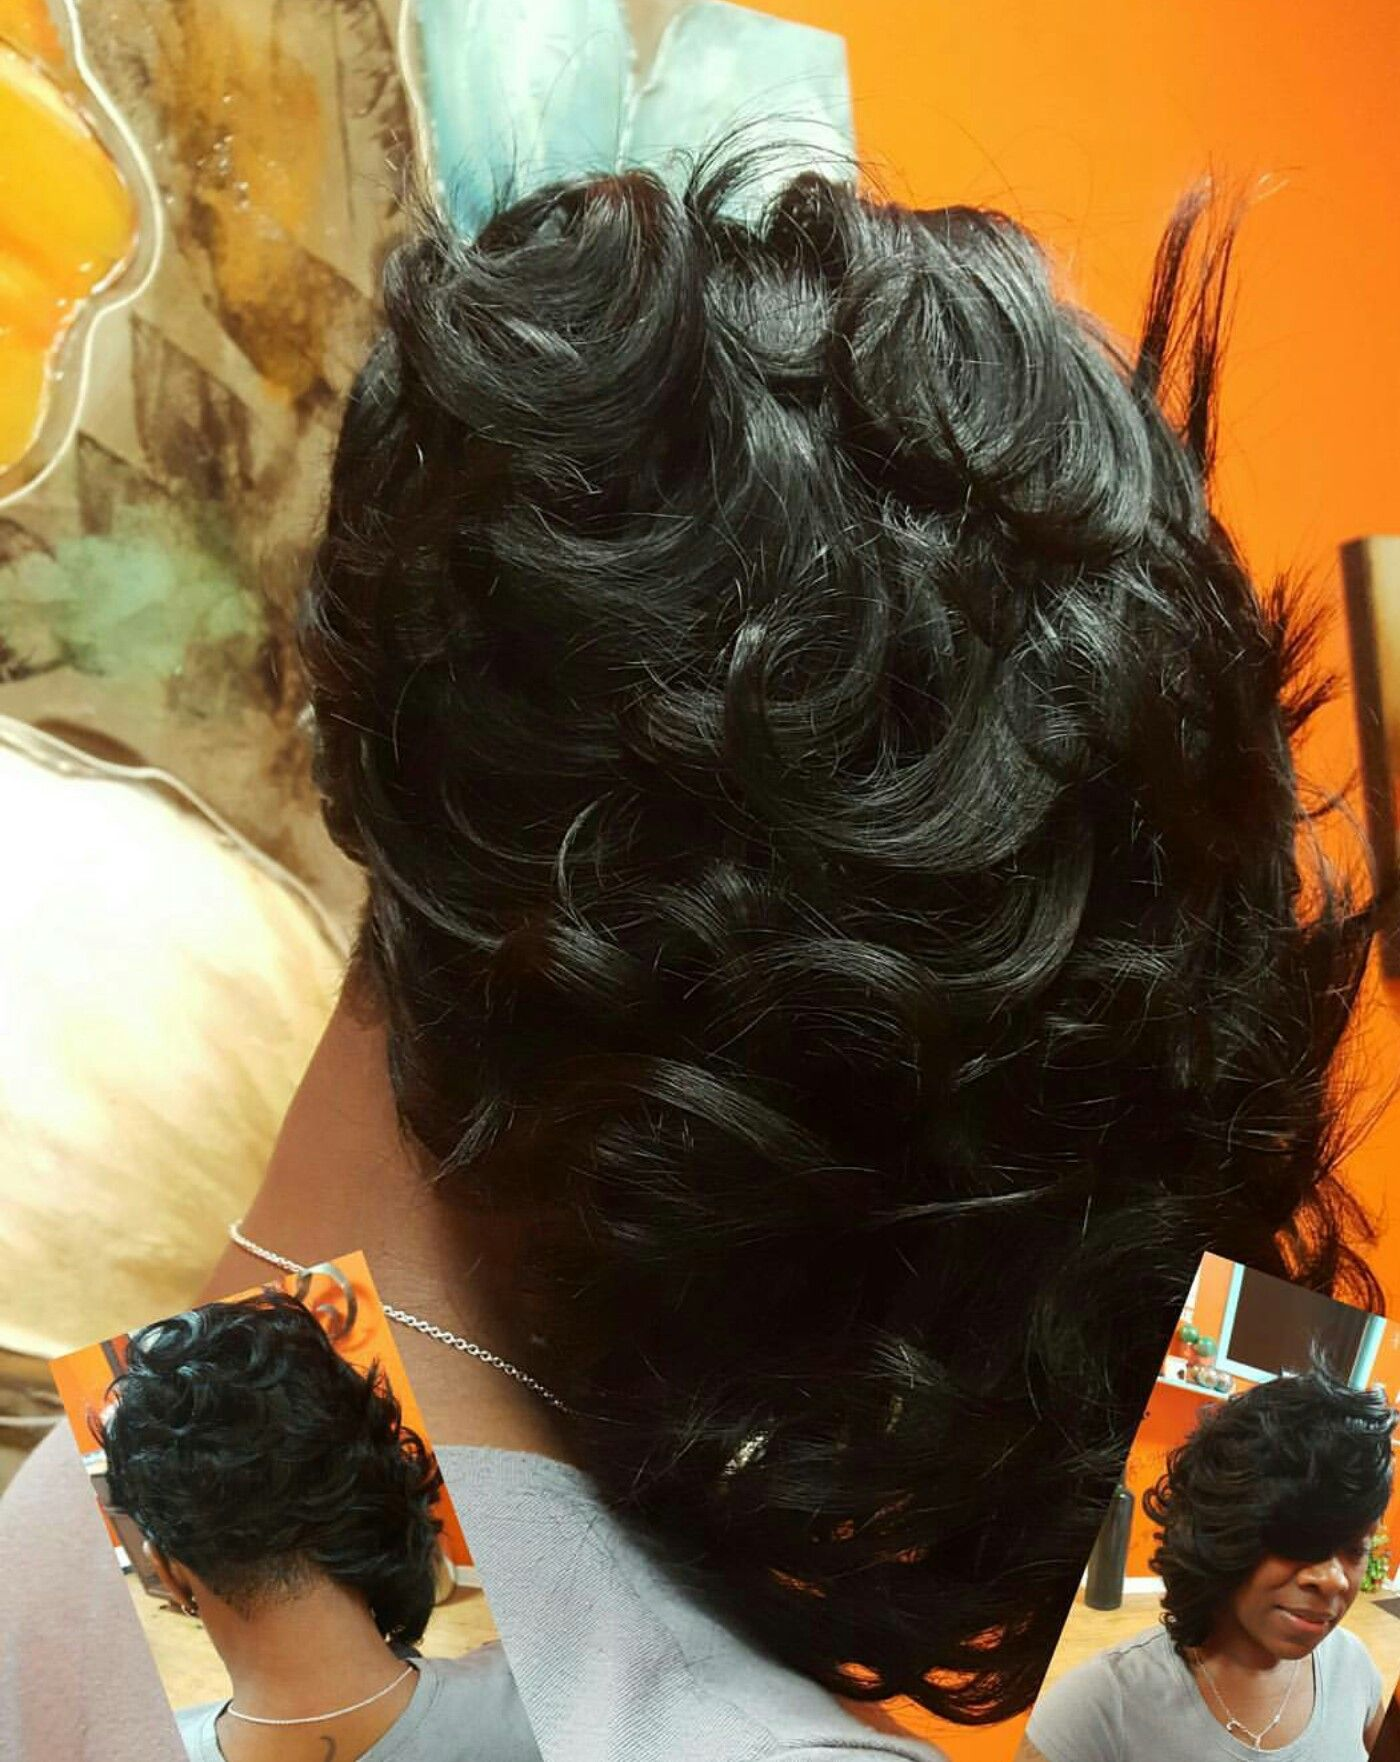 Hairstyle of boy pin by jacqueline shell on jackie  pinterest  wig bobs and hair style